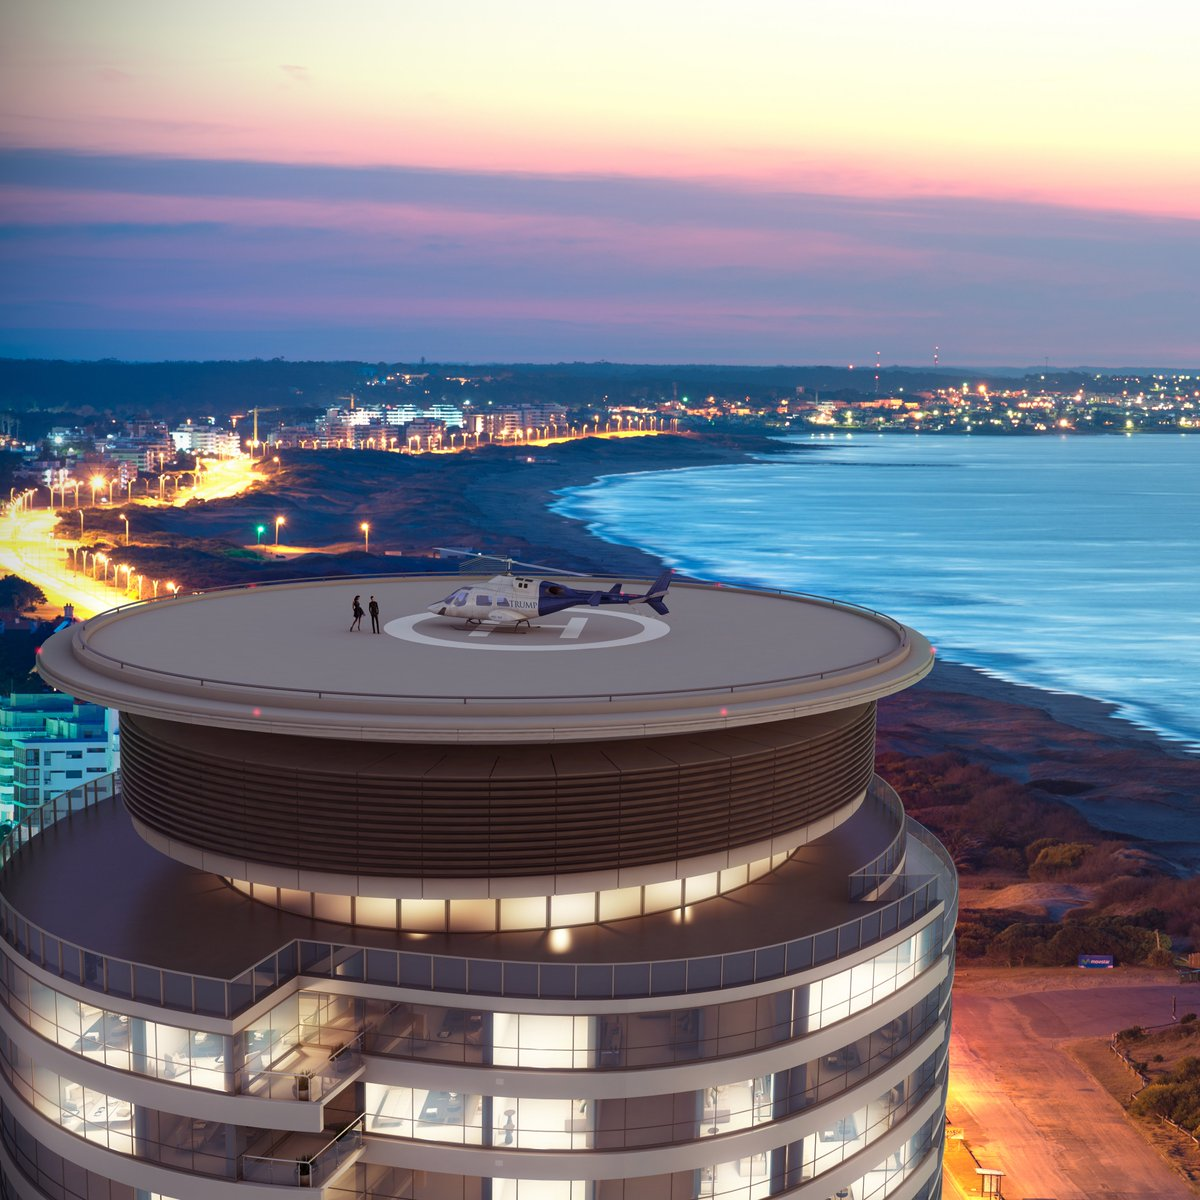 Private Heliport ✔️ Gourmet Market ✔️ Indoor Tennis Court✔️  Trump Punta Del Este is set to redefine what is meant by luxury living as the most exclusive tower in South America.